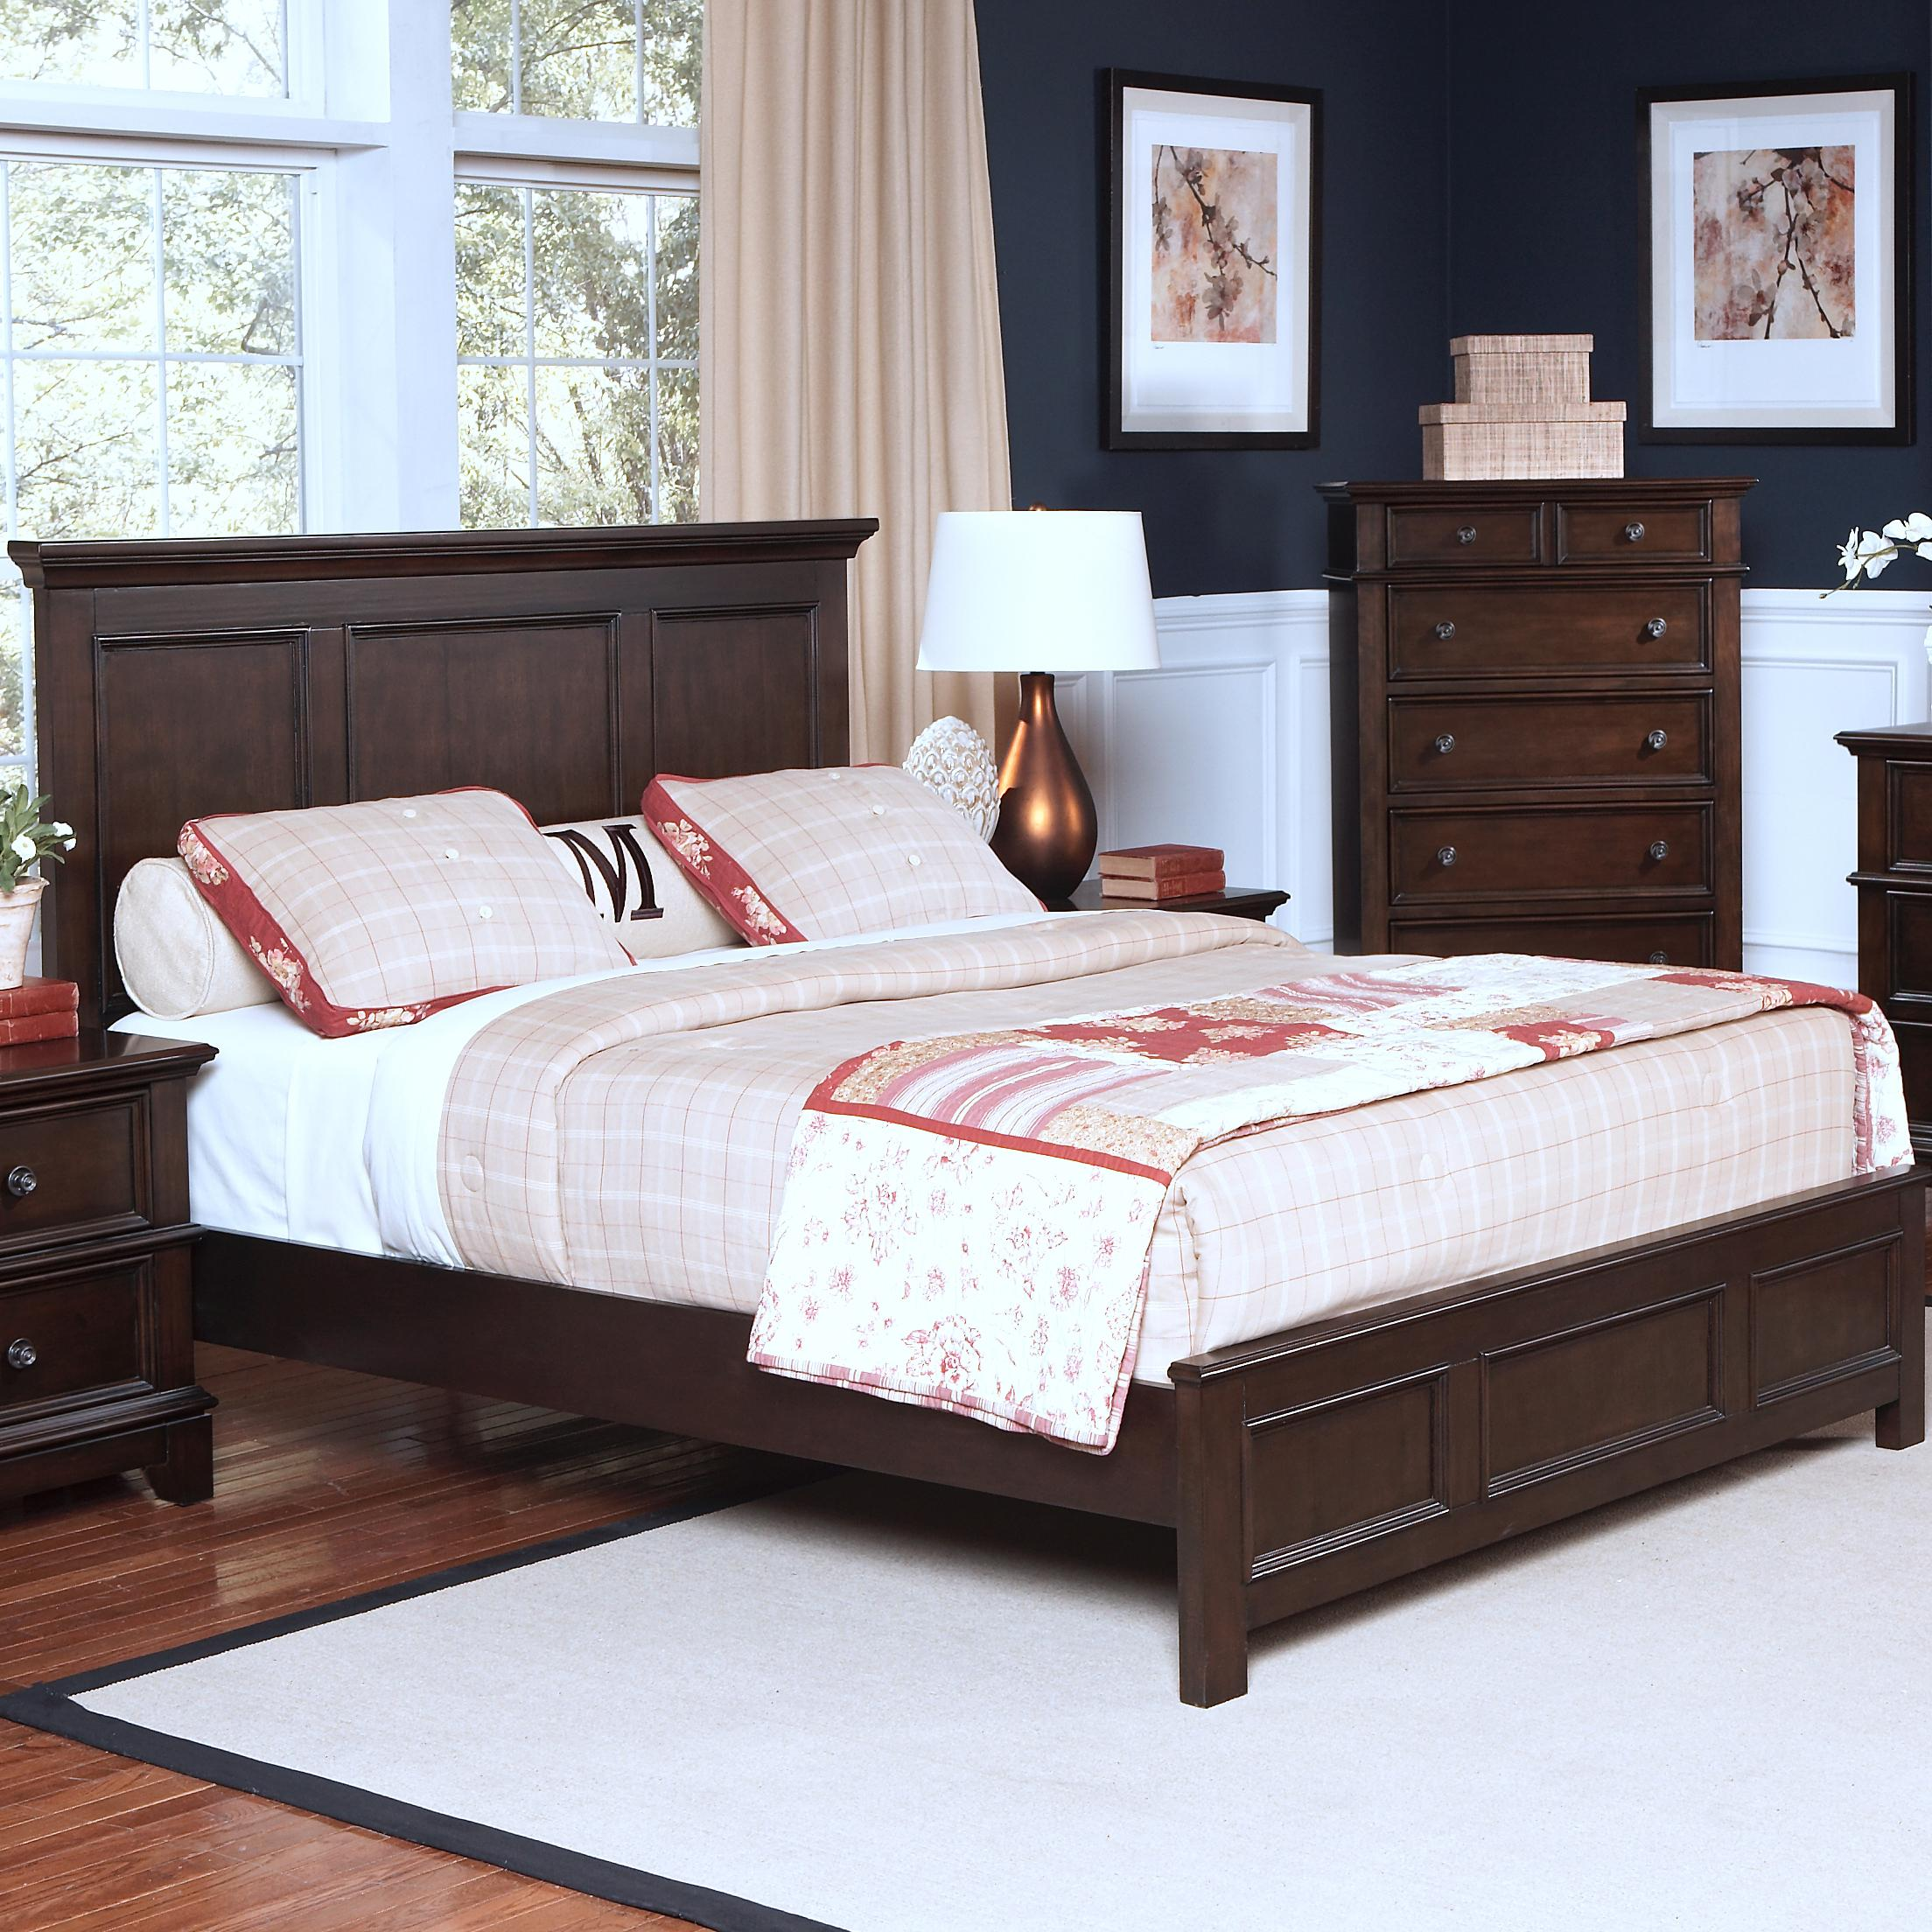 New classic prescott king headboard and footboard bed for King footboard